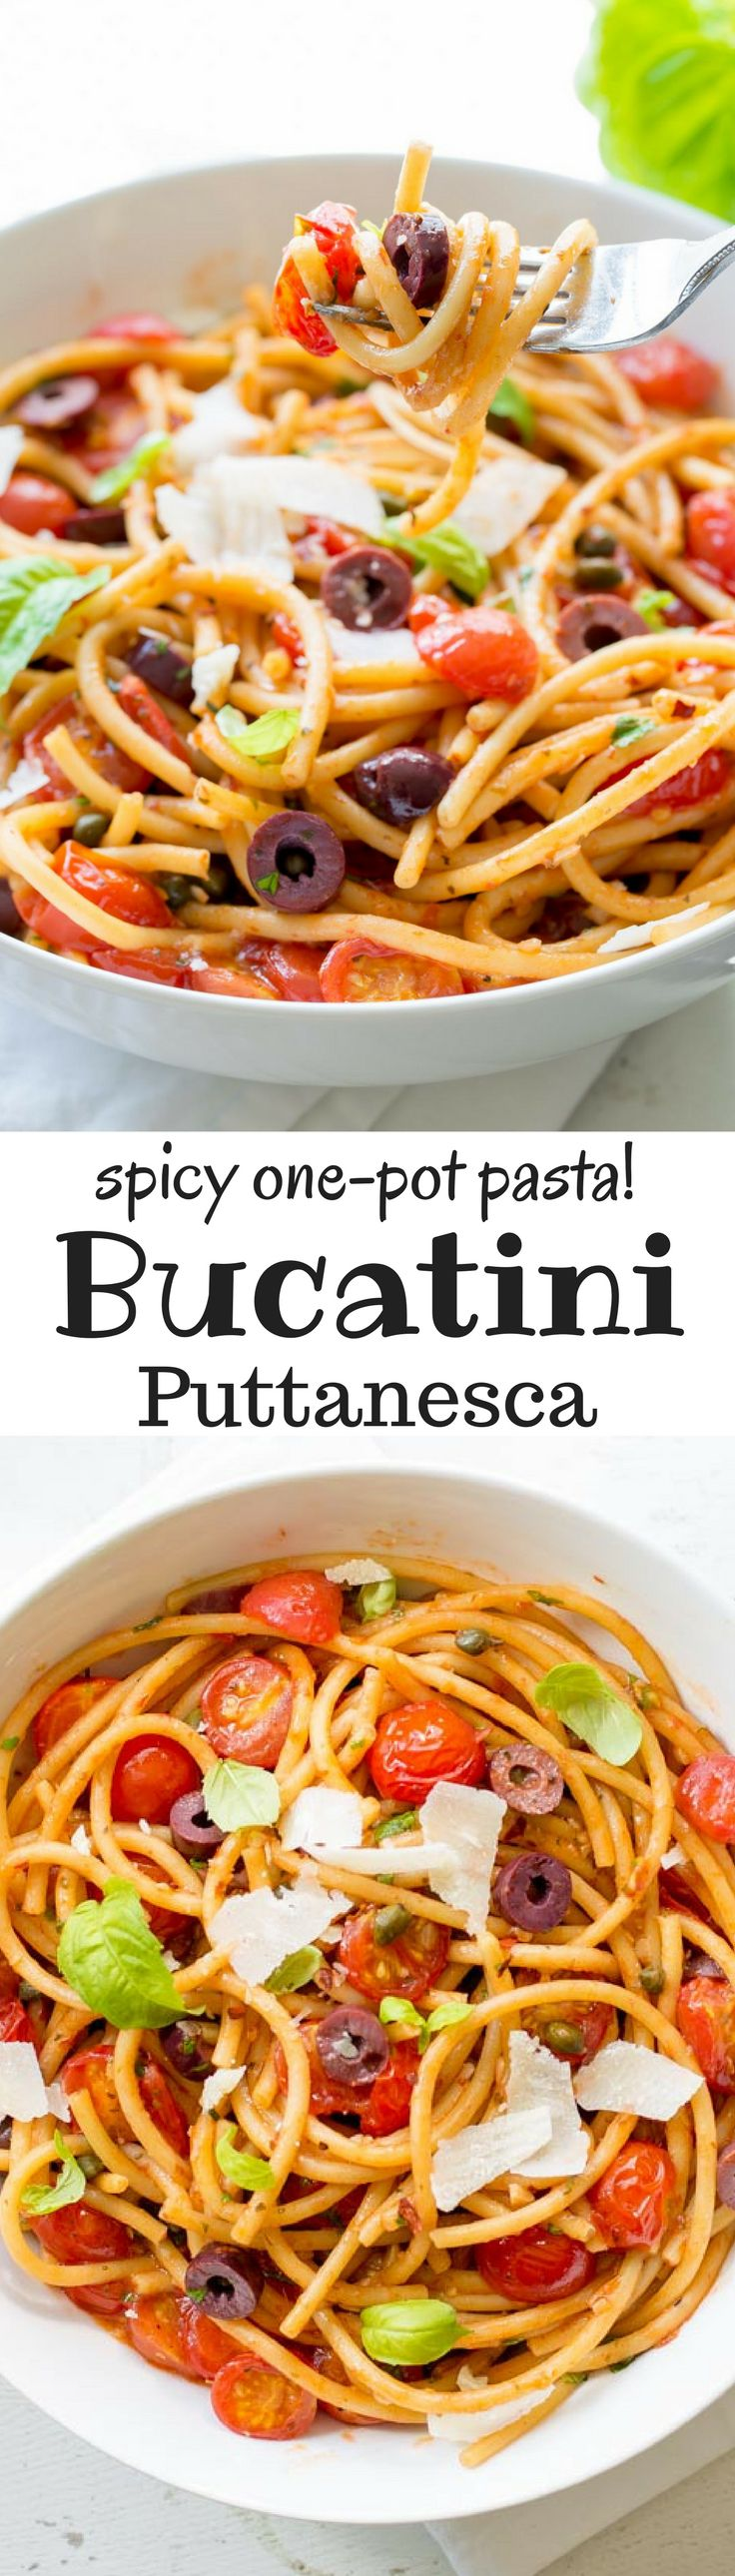 Bucatini Puttanesca ~ a deliciously easy one-pot pasta dish with a simple but zesty sauce and loads of fresh tomatoes, olives and capers. www.savingdessert... anchovy | red pepper | bucatini pasta | spaghetti | cherry tomatoes | kalamata olives | capers | meatless monday